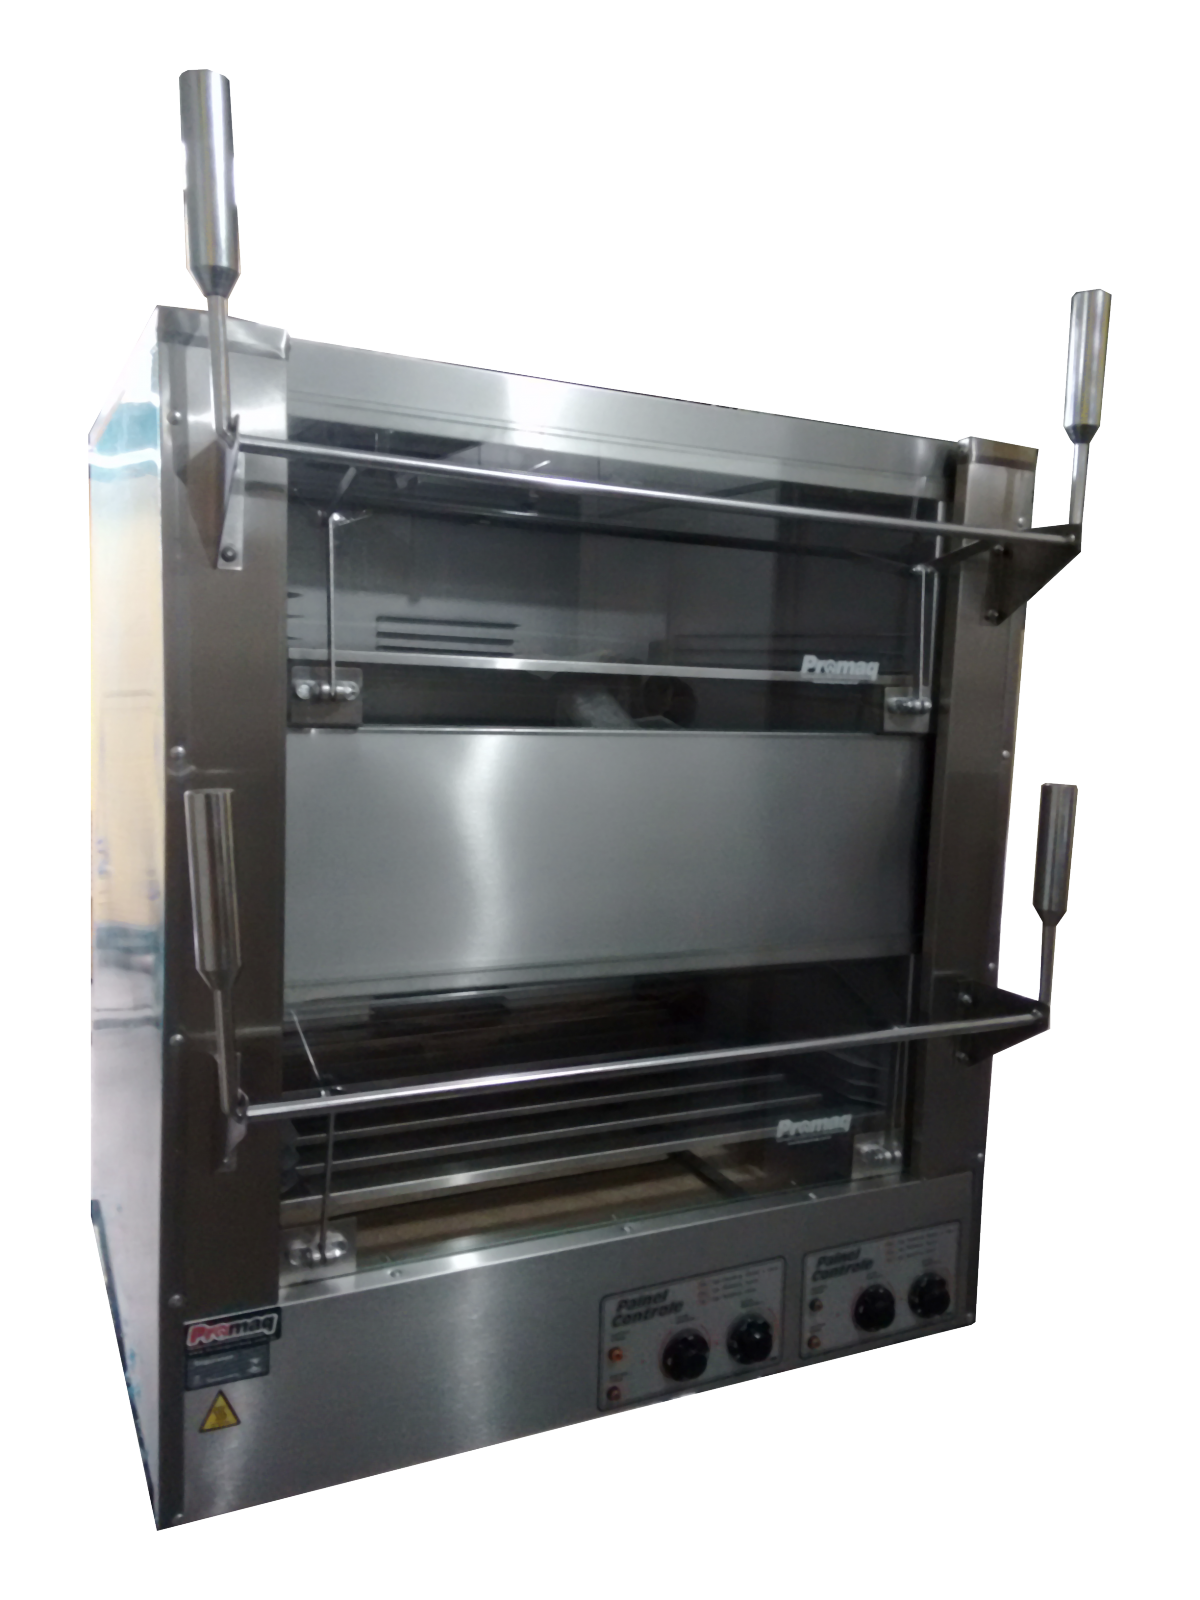 Forno industrial a g s promaq for Forno a gas